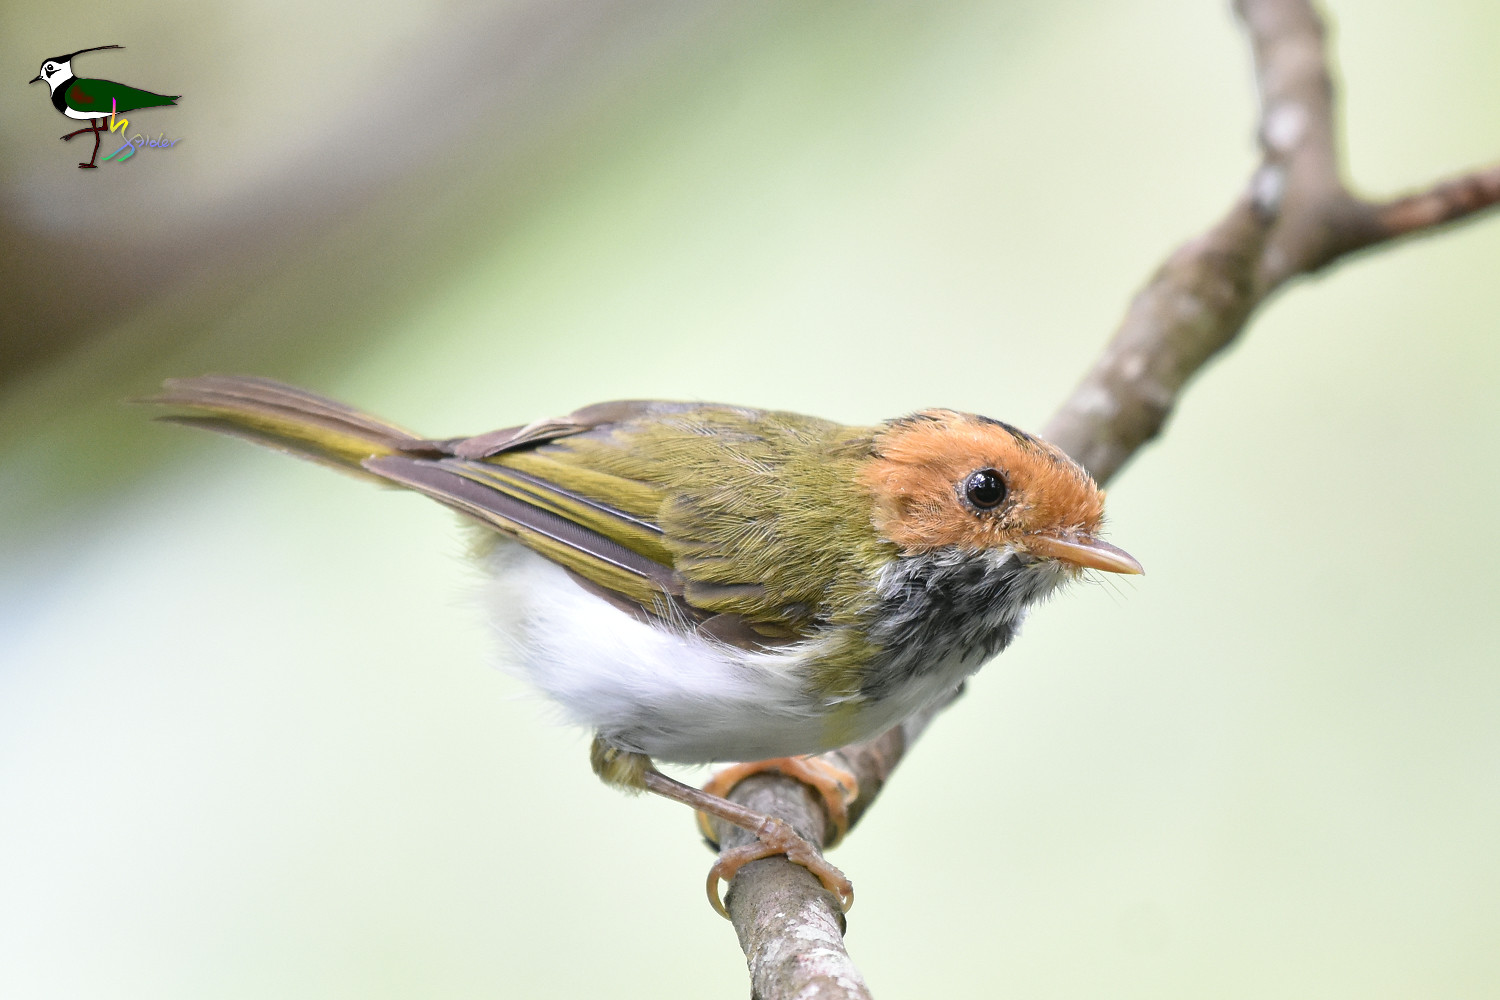 White-throated_Flycatcher_Warbler_2290